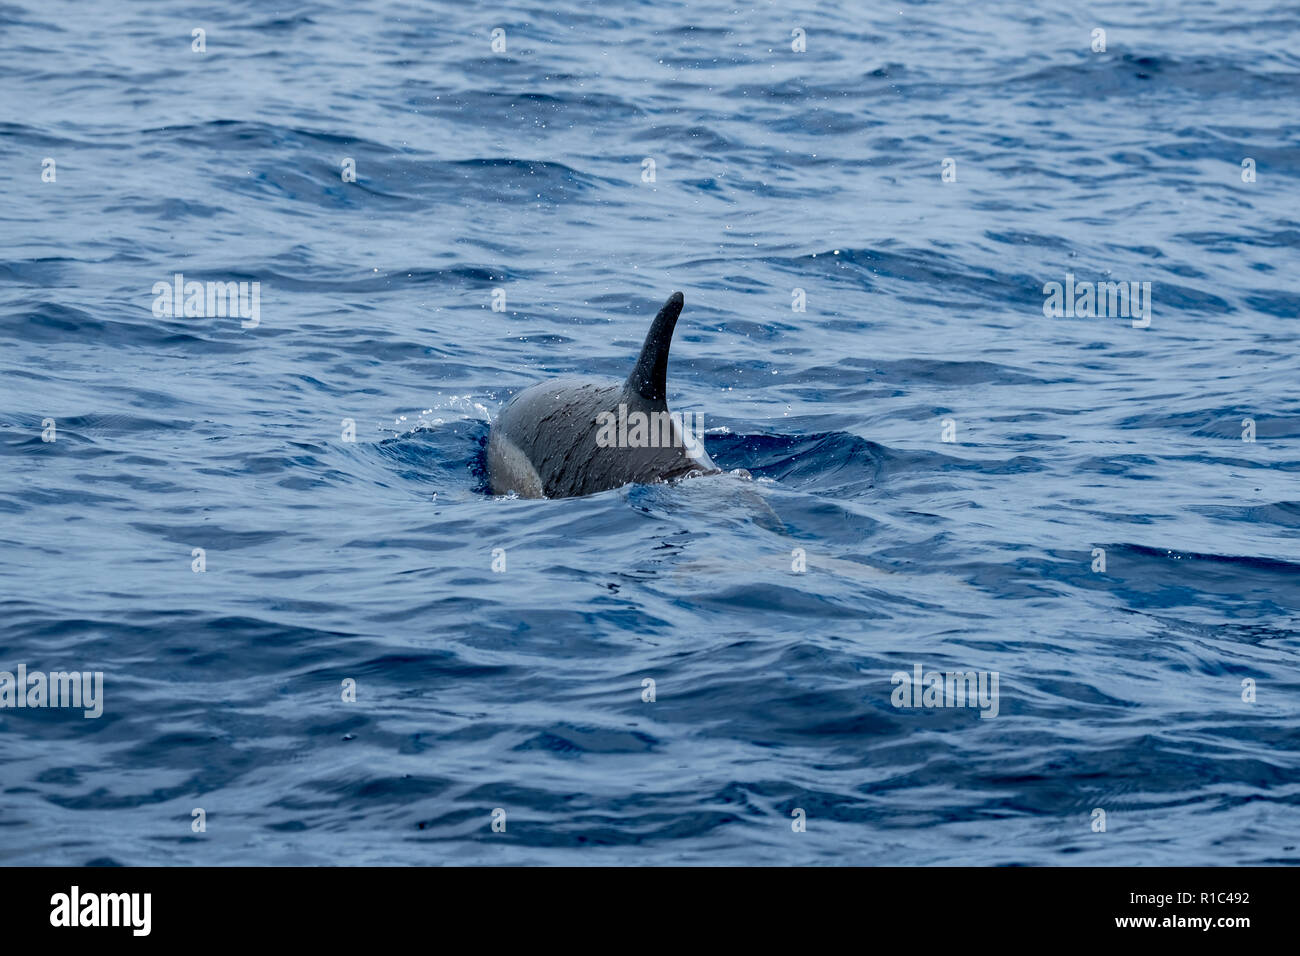 A short beaked common dolphin swimming in a blue ocean - Stock Image